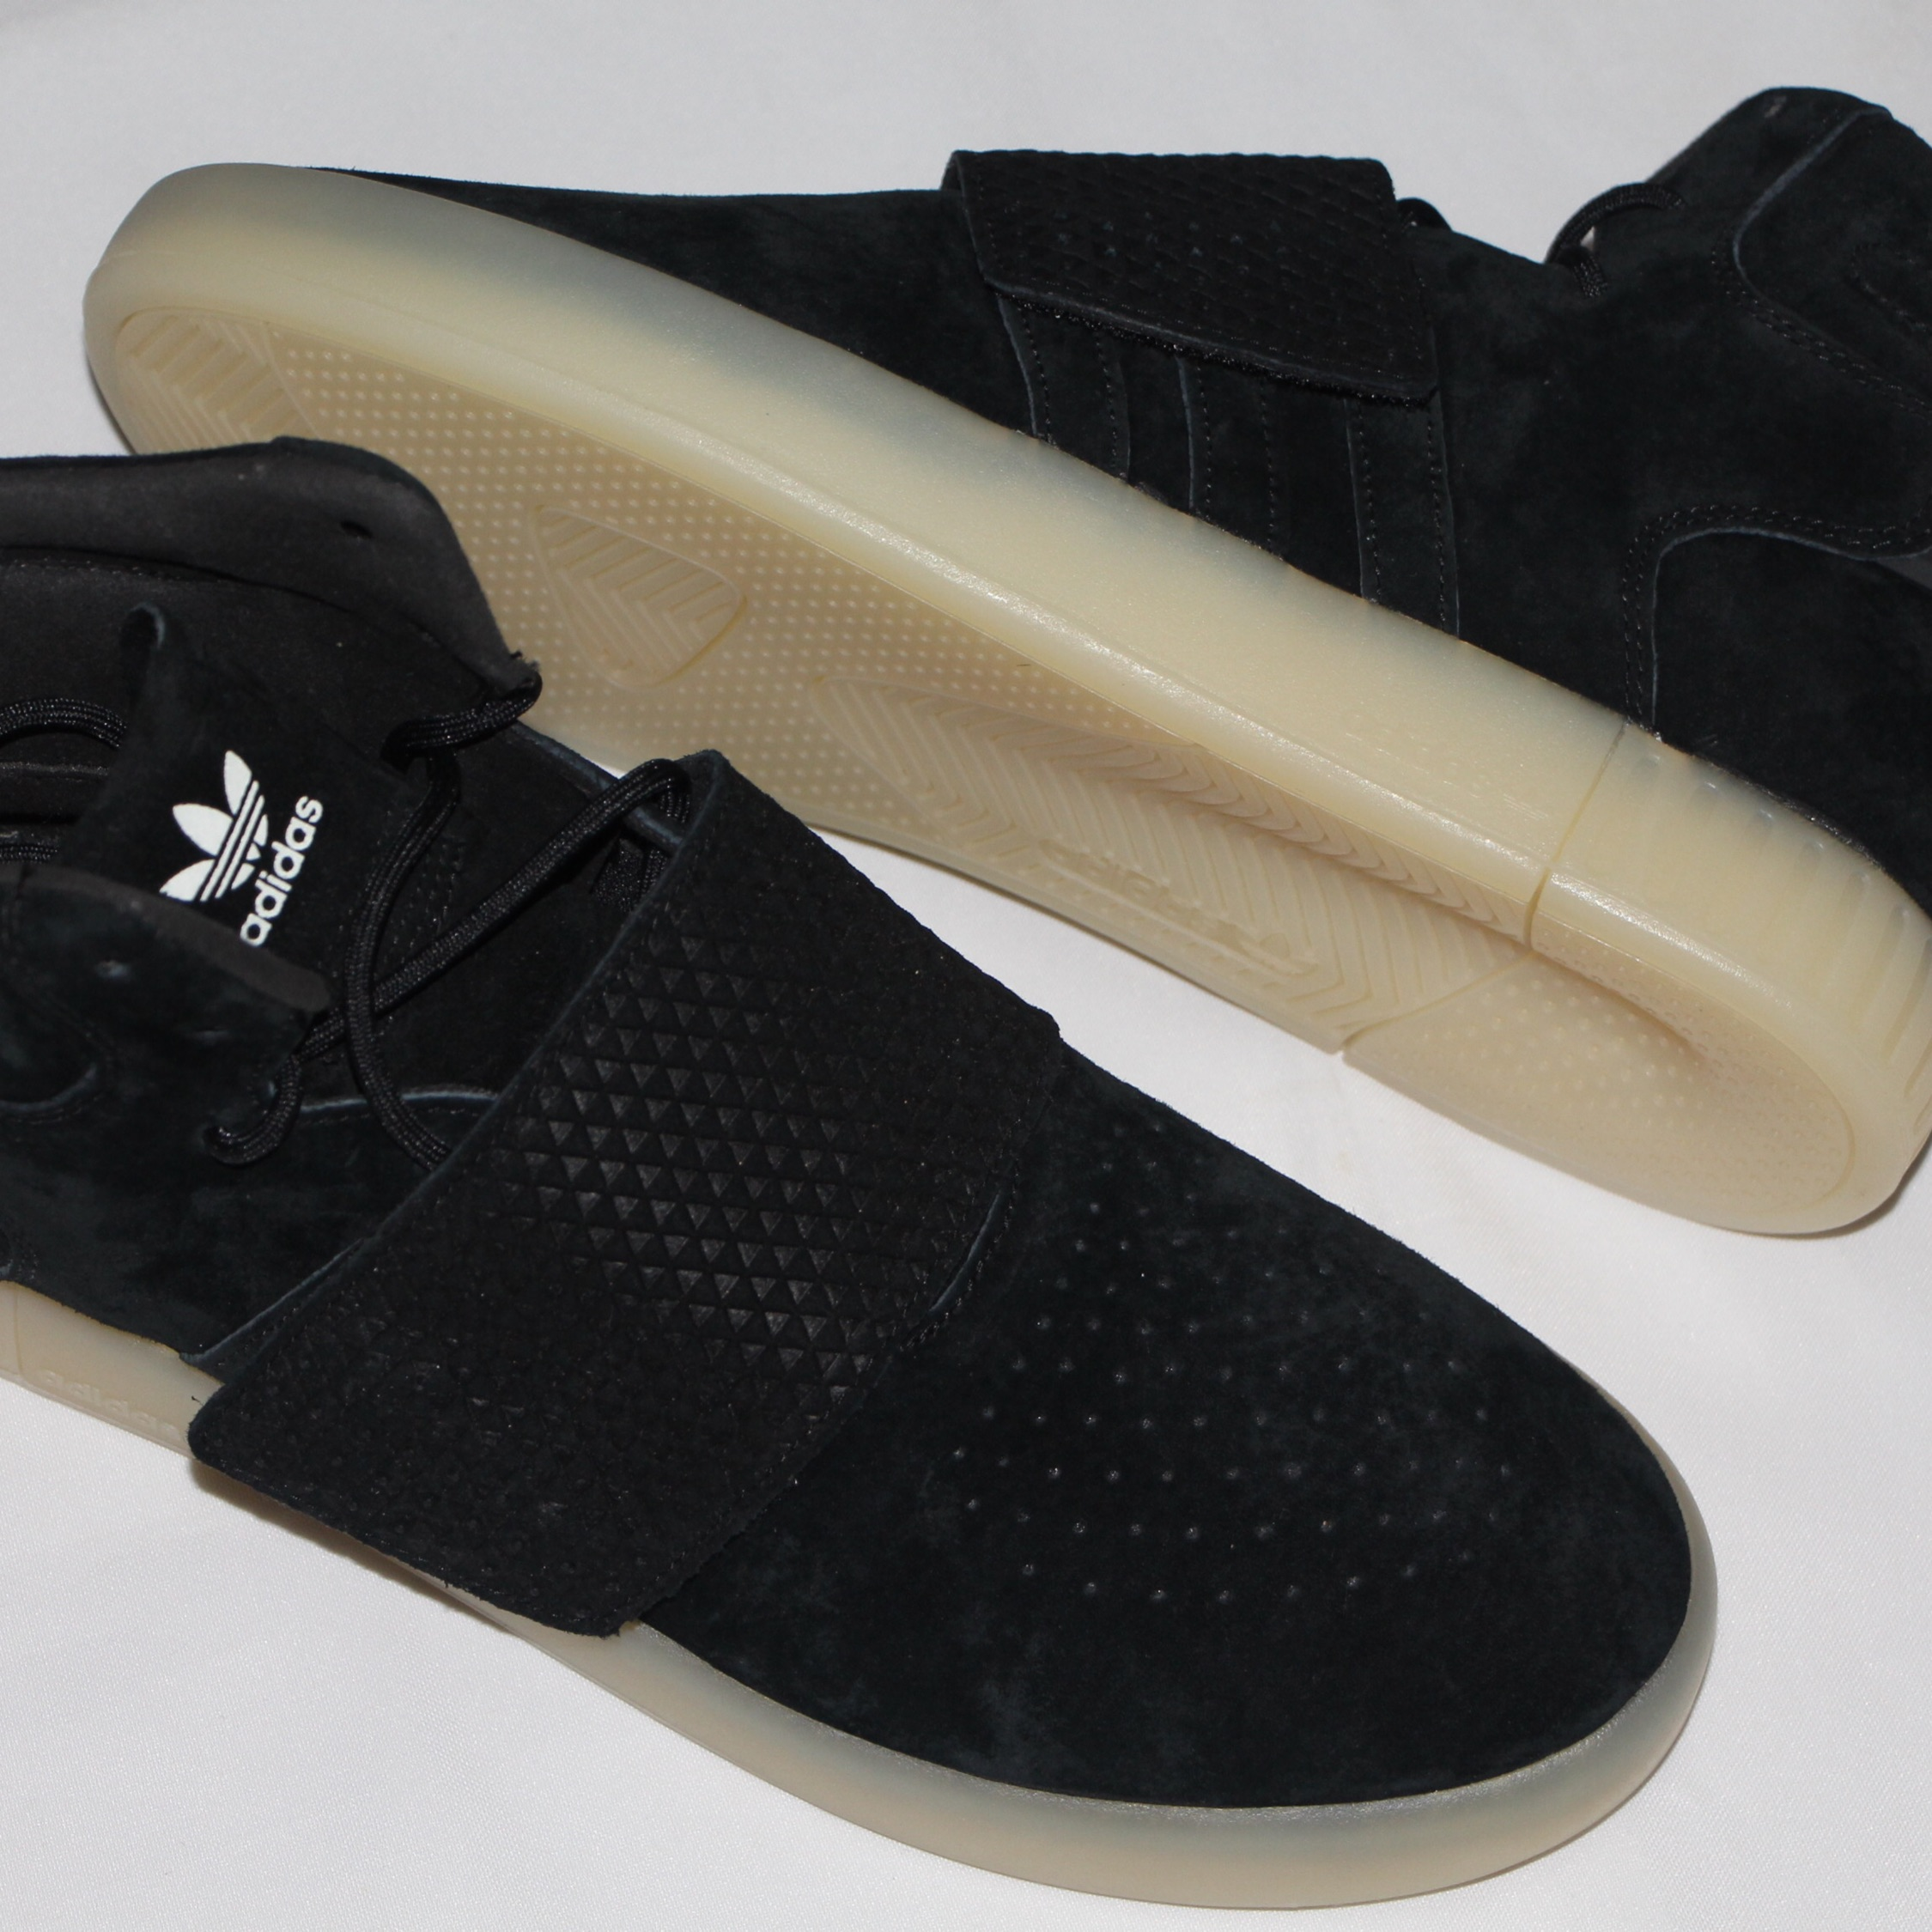 competitive price 48777 3a50a Adidas Tubular Invader Boots 750 Shoes